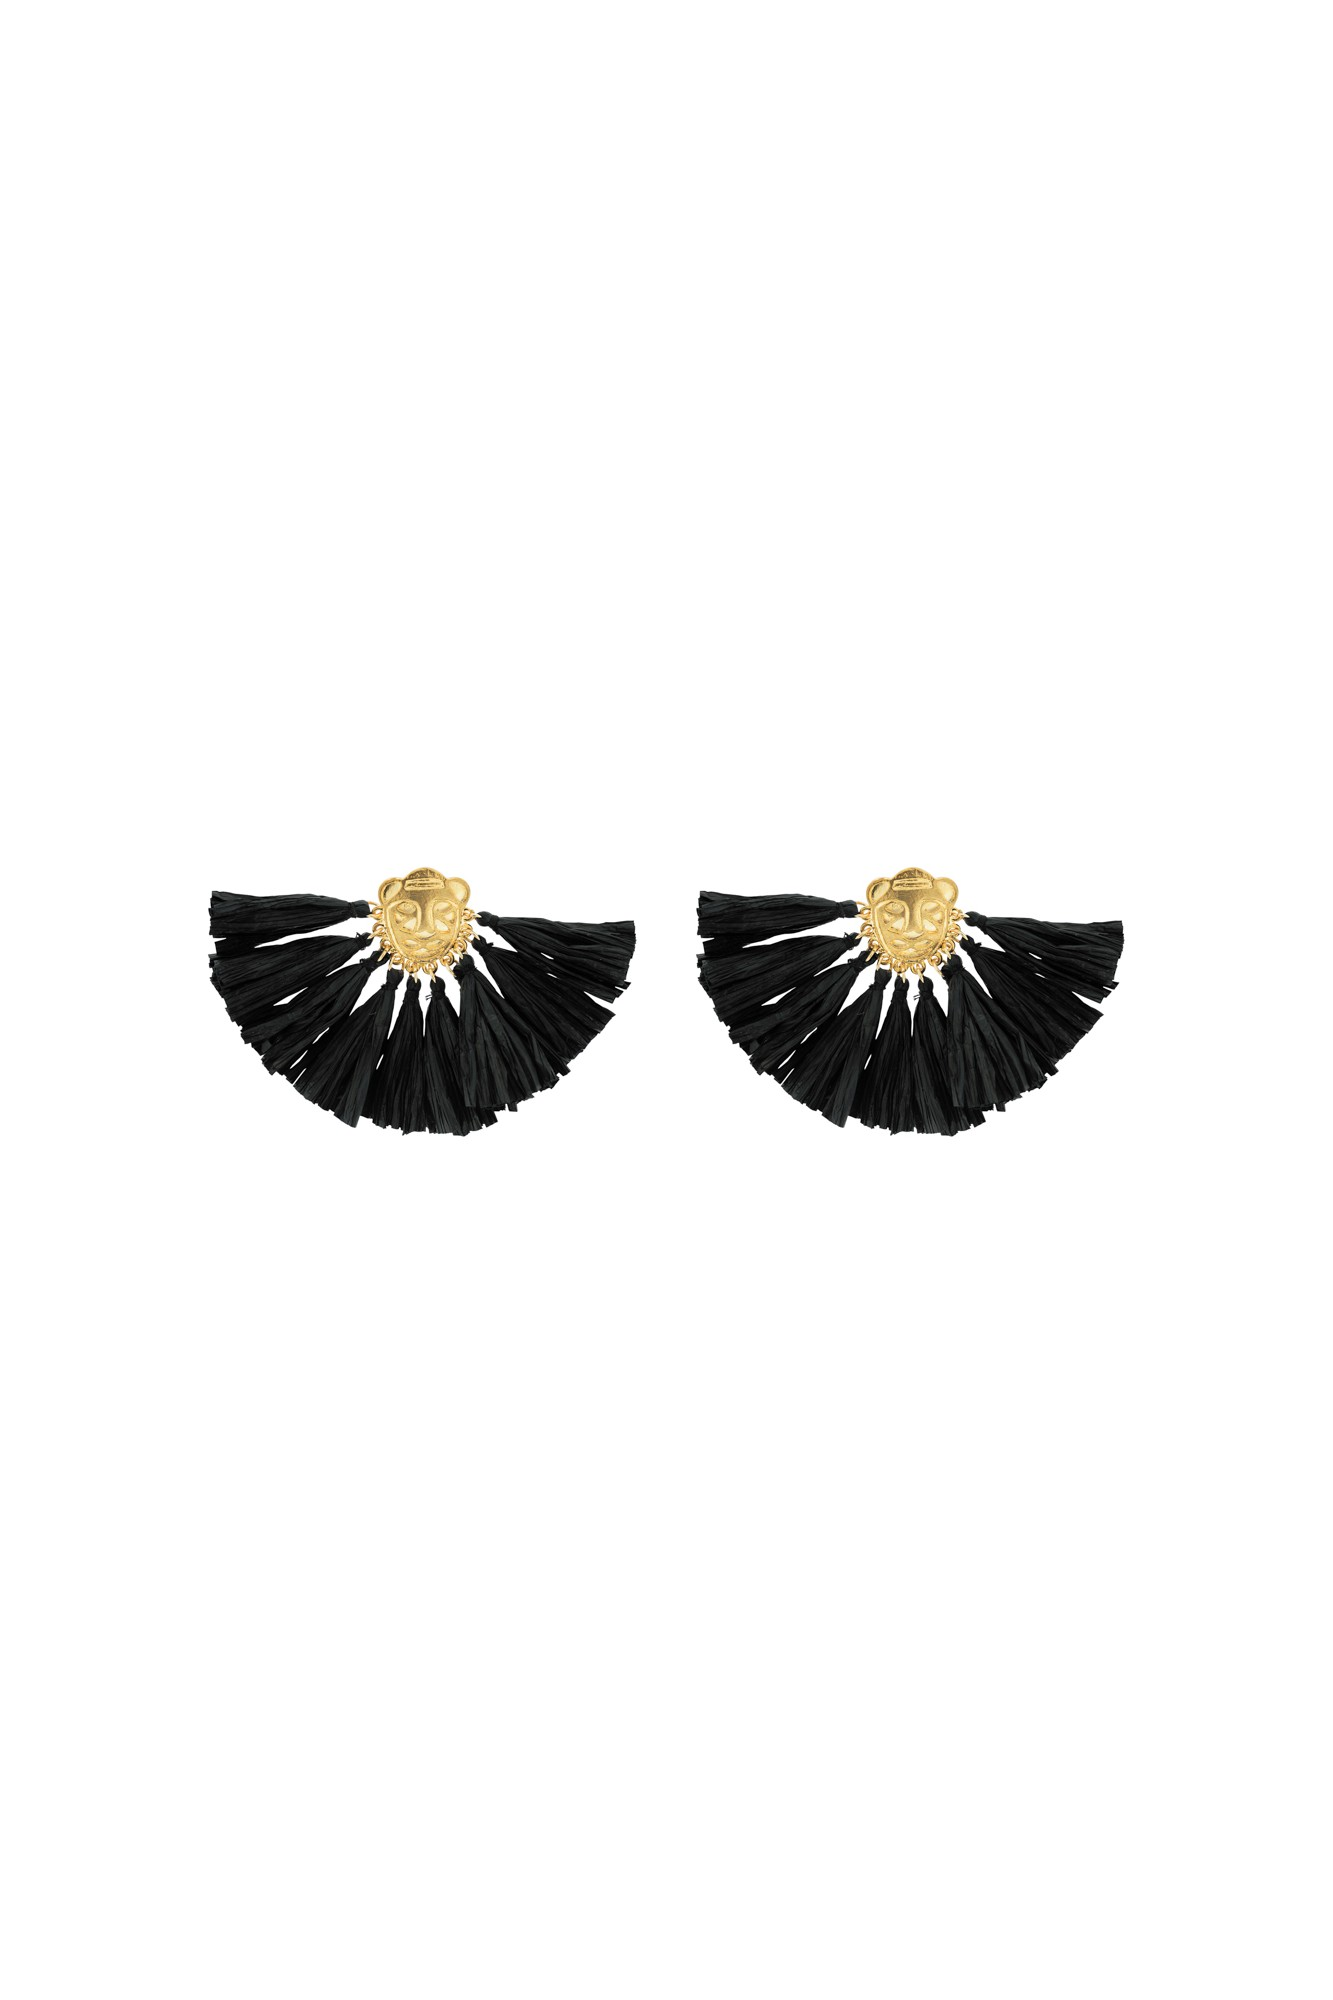 BADRA EARRINGS